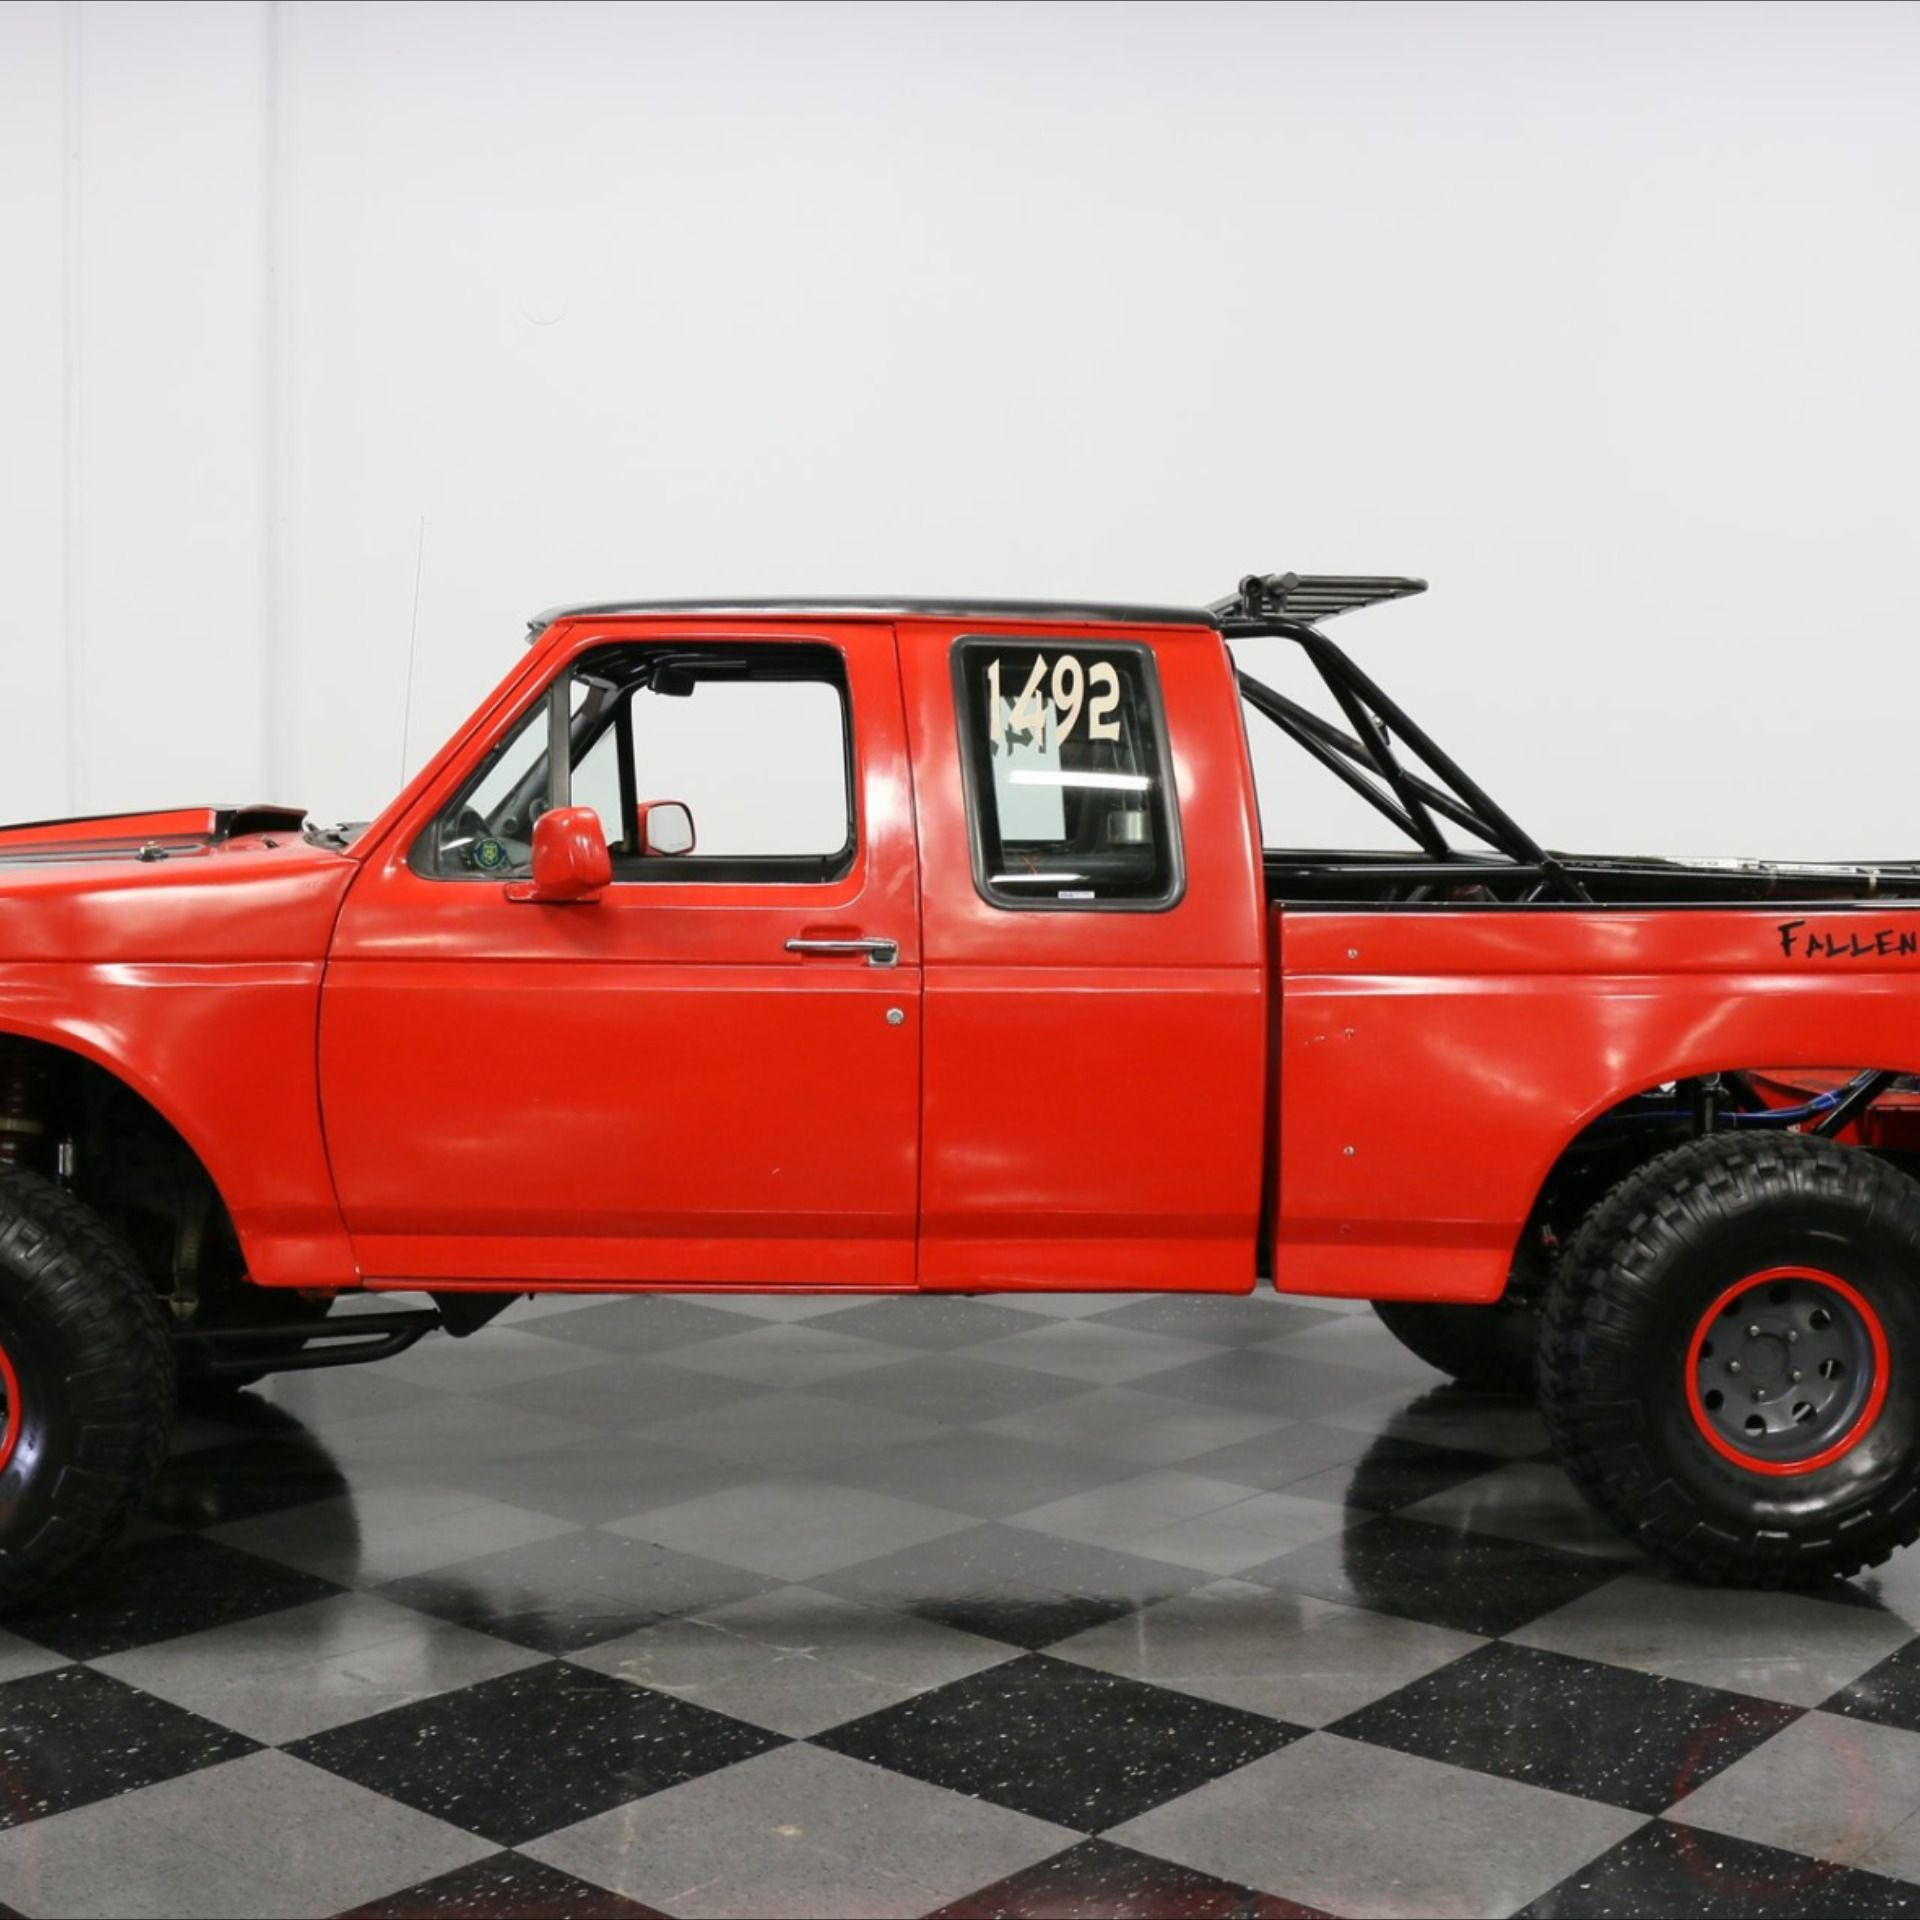 1995 Ford F 150 Pre Runner For Sale In Fort Worth Tx Price 21 995 In 2020 1995 Ford F150 Ford F150 Ford